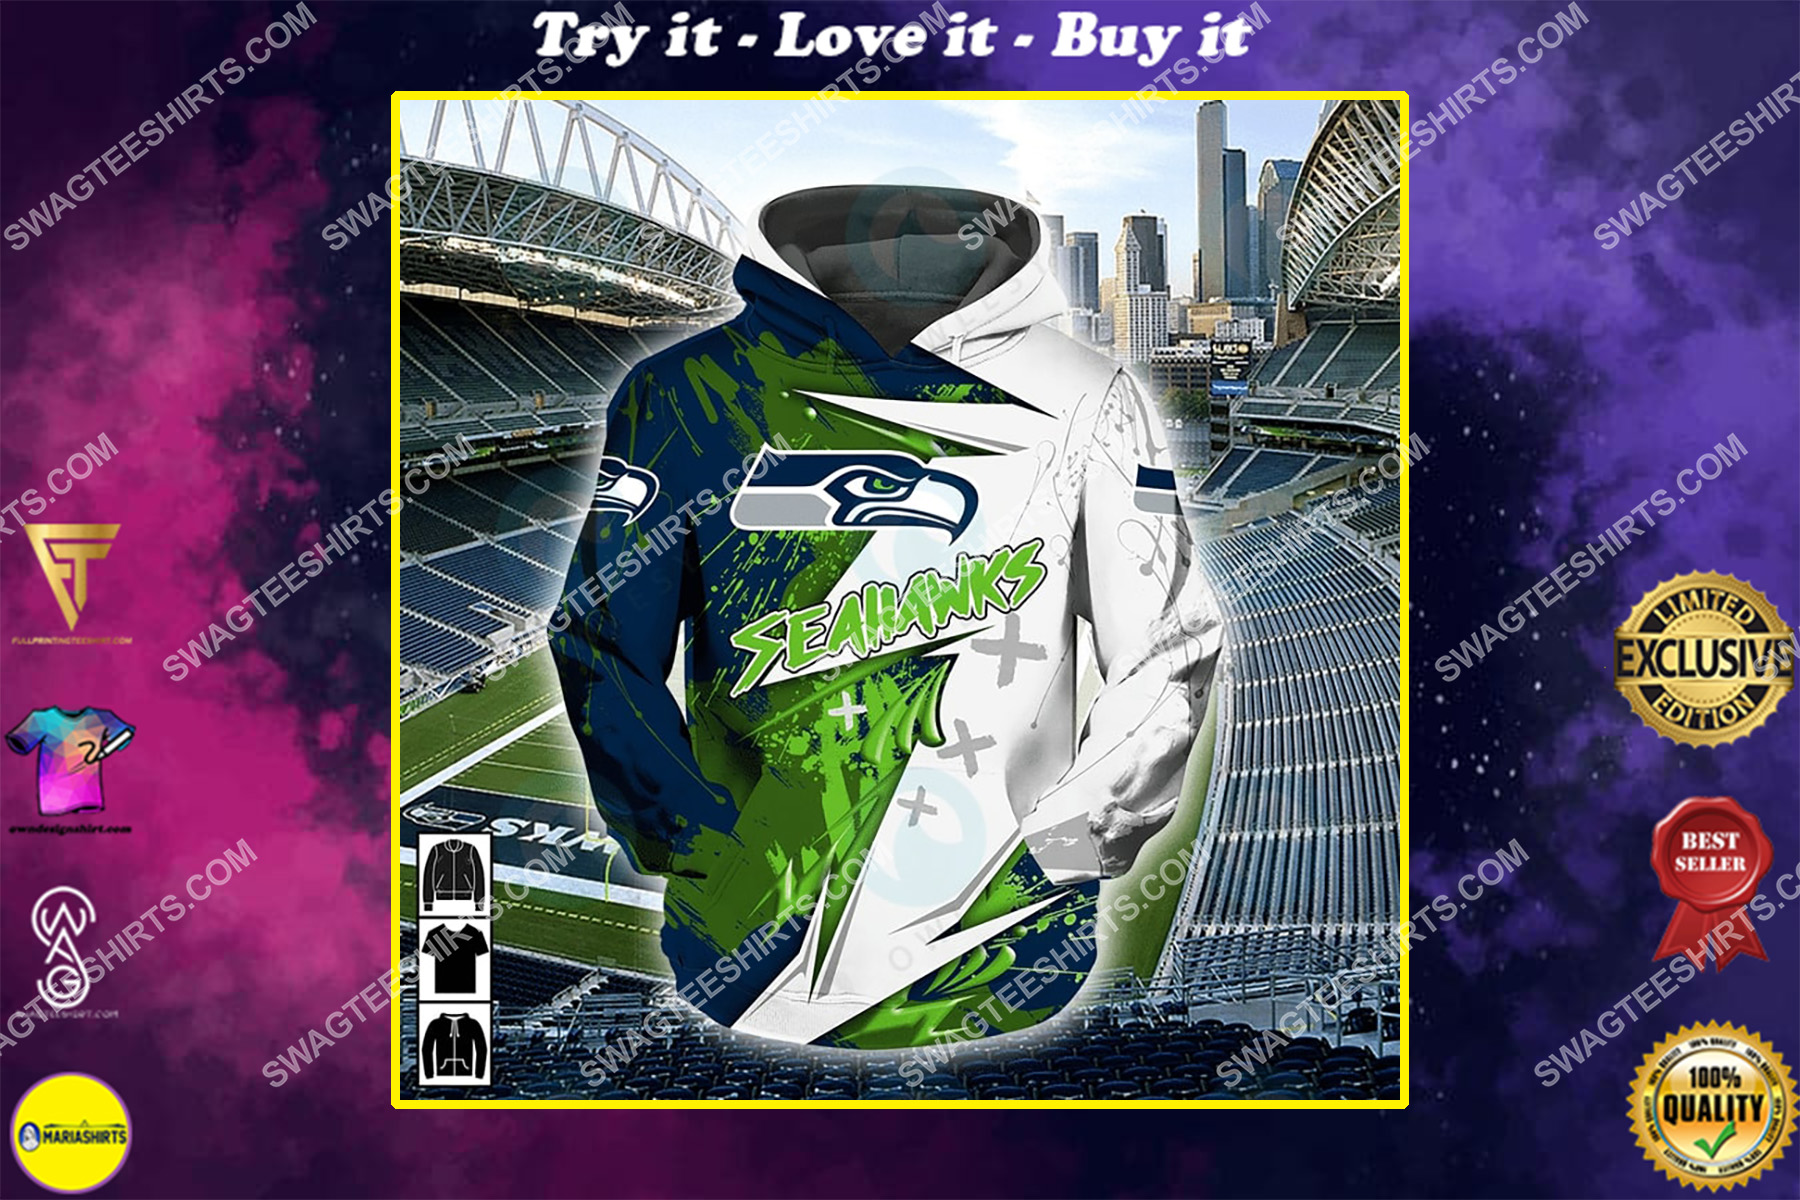 the american football team seattle seahawks all over printed shirt